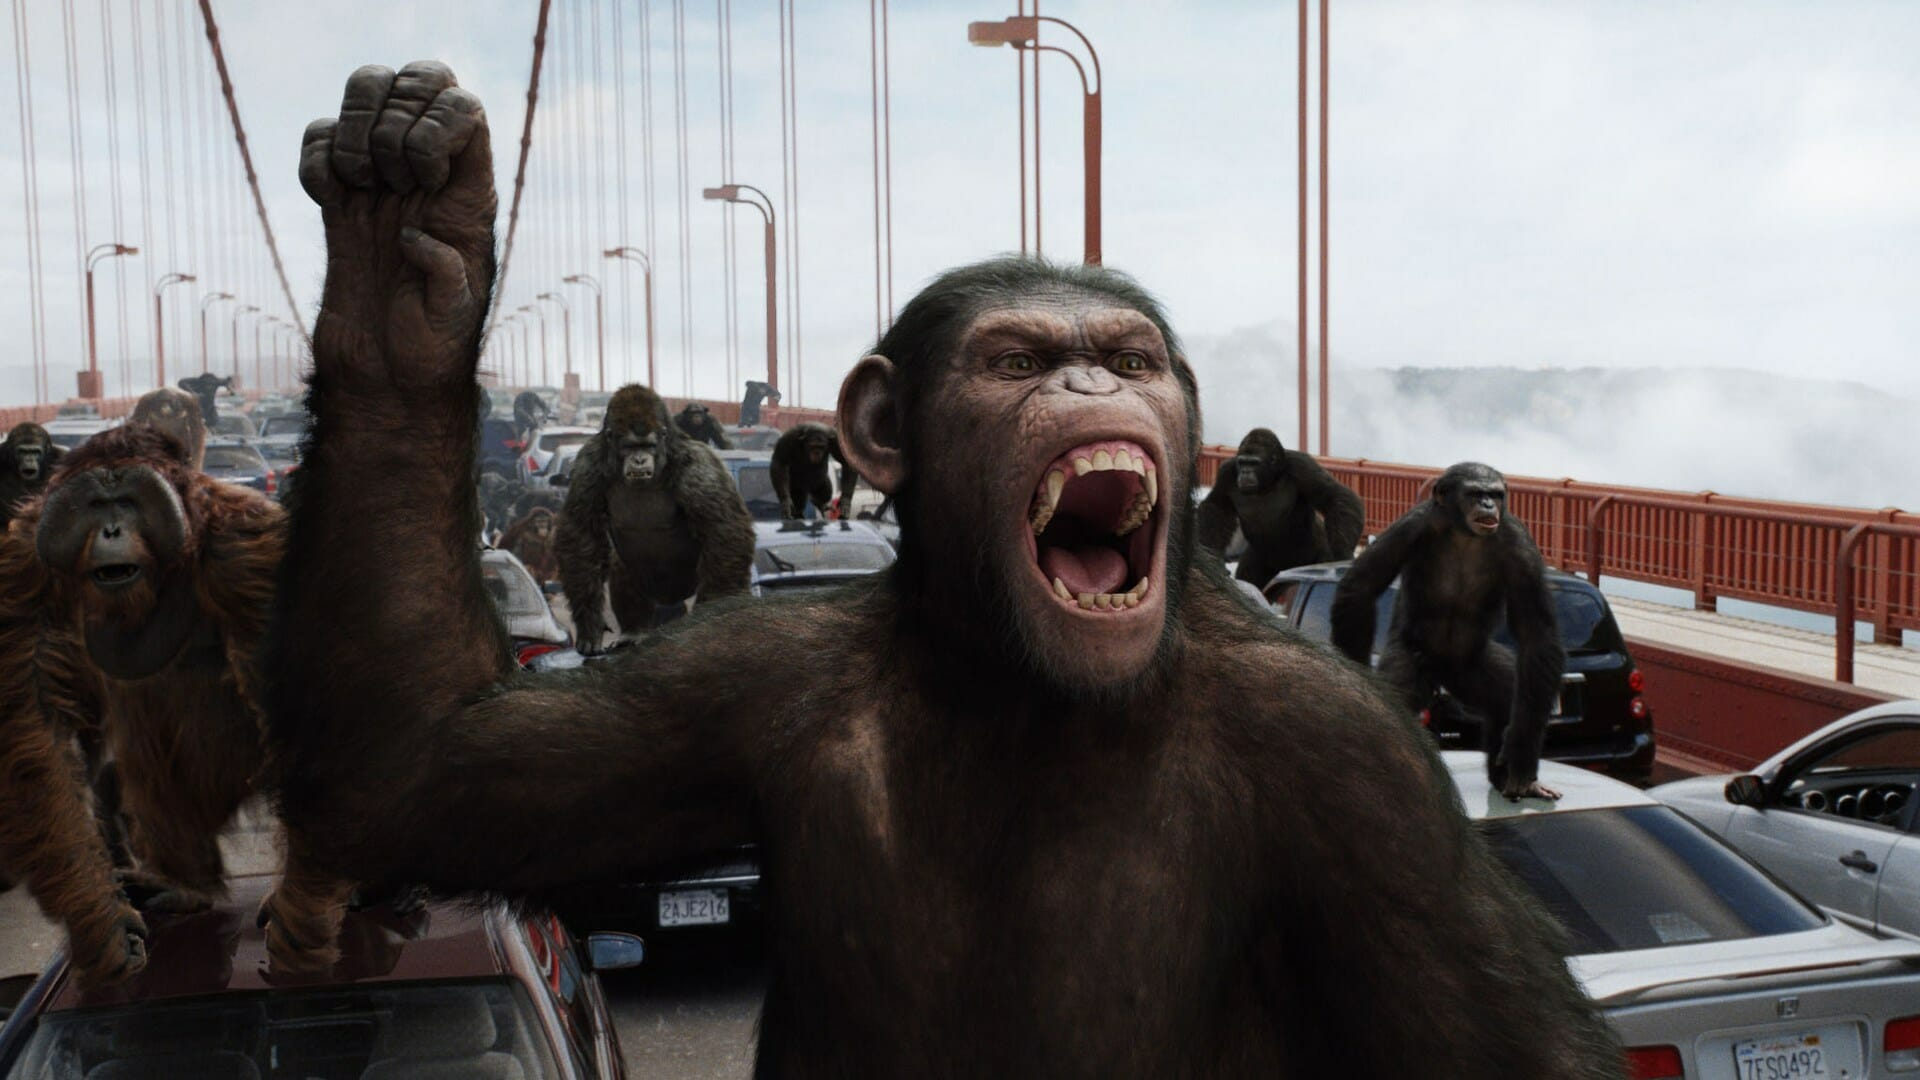 From Script to Screen: Rise of the Planet of the Apes